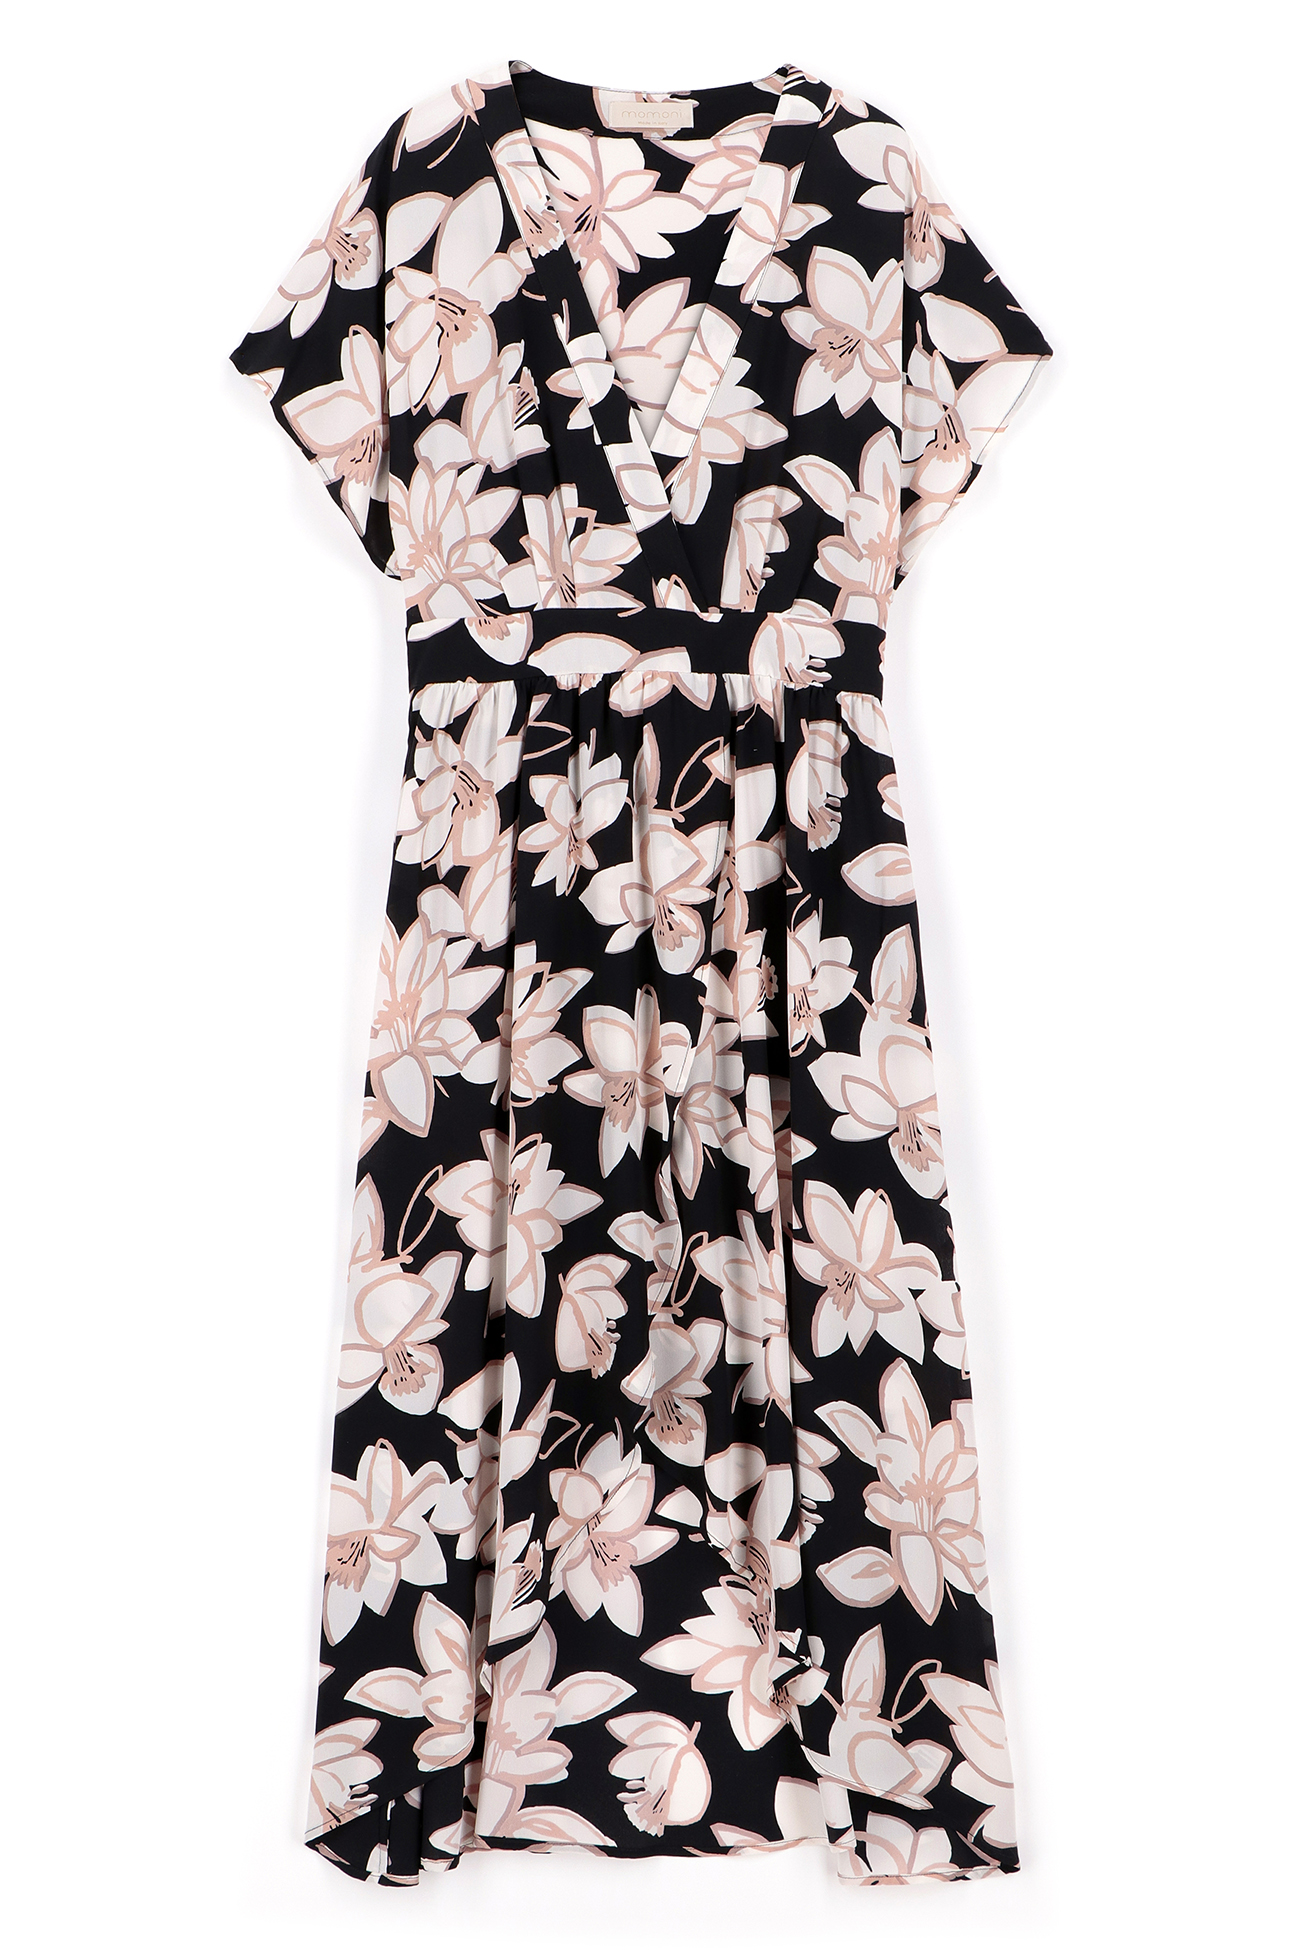 Crepe de chine dress with black and pink floral print MOMONI |  | MODR0079041